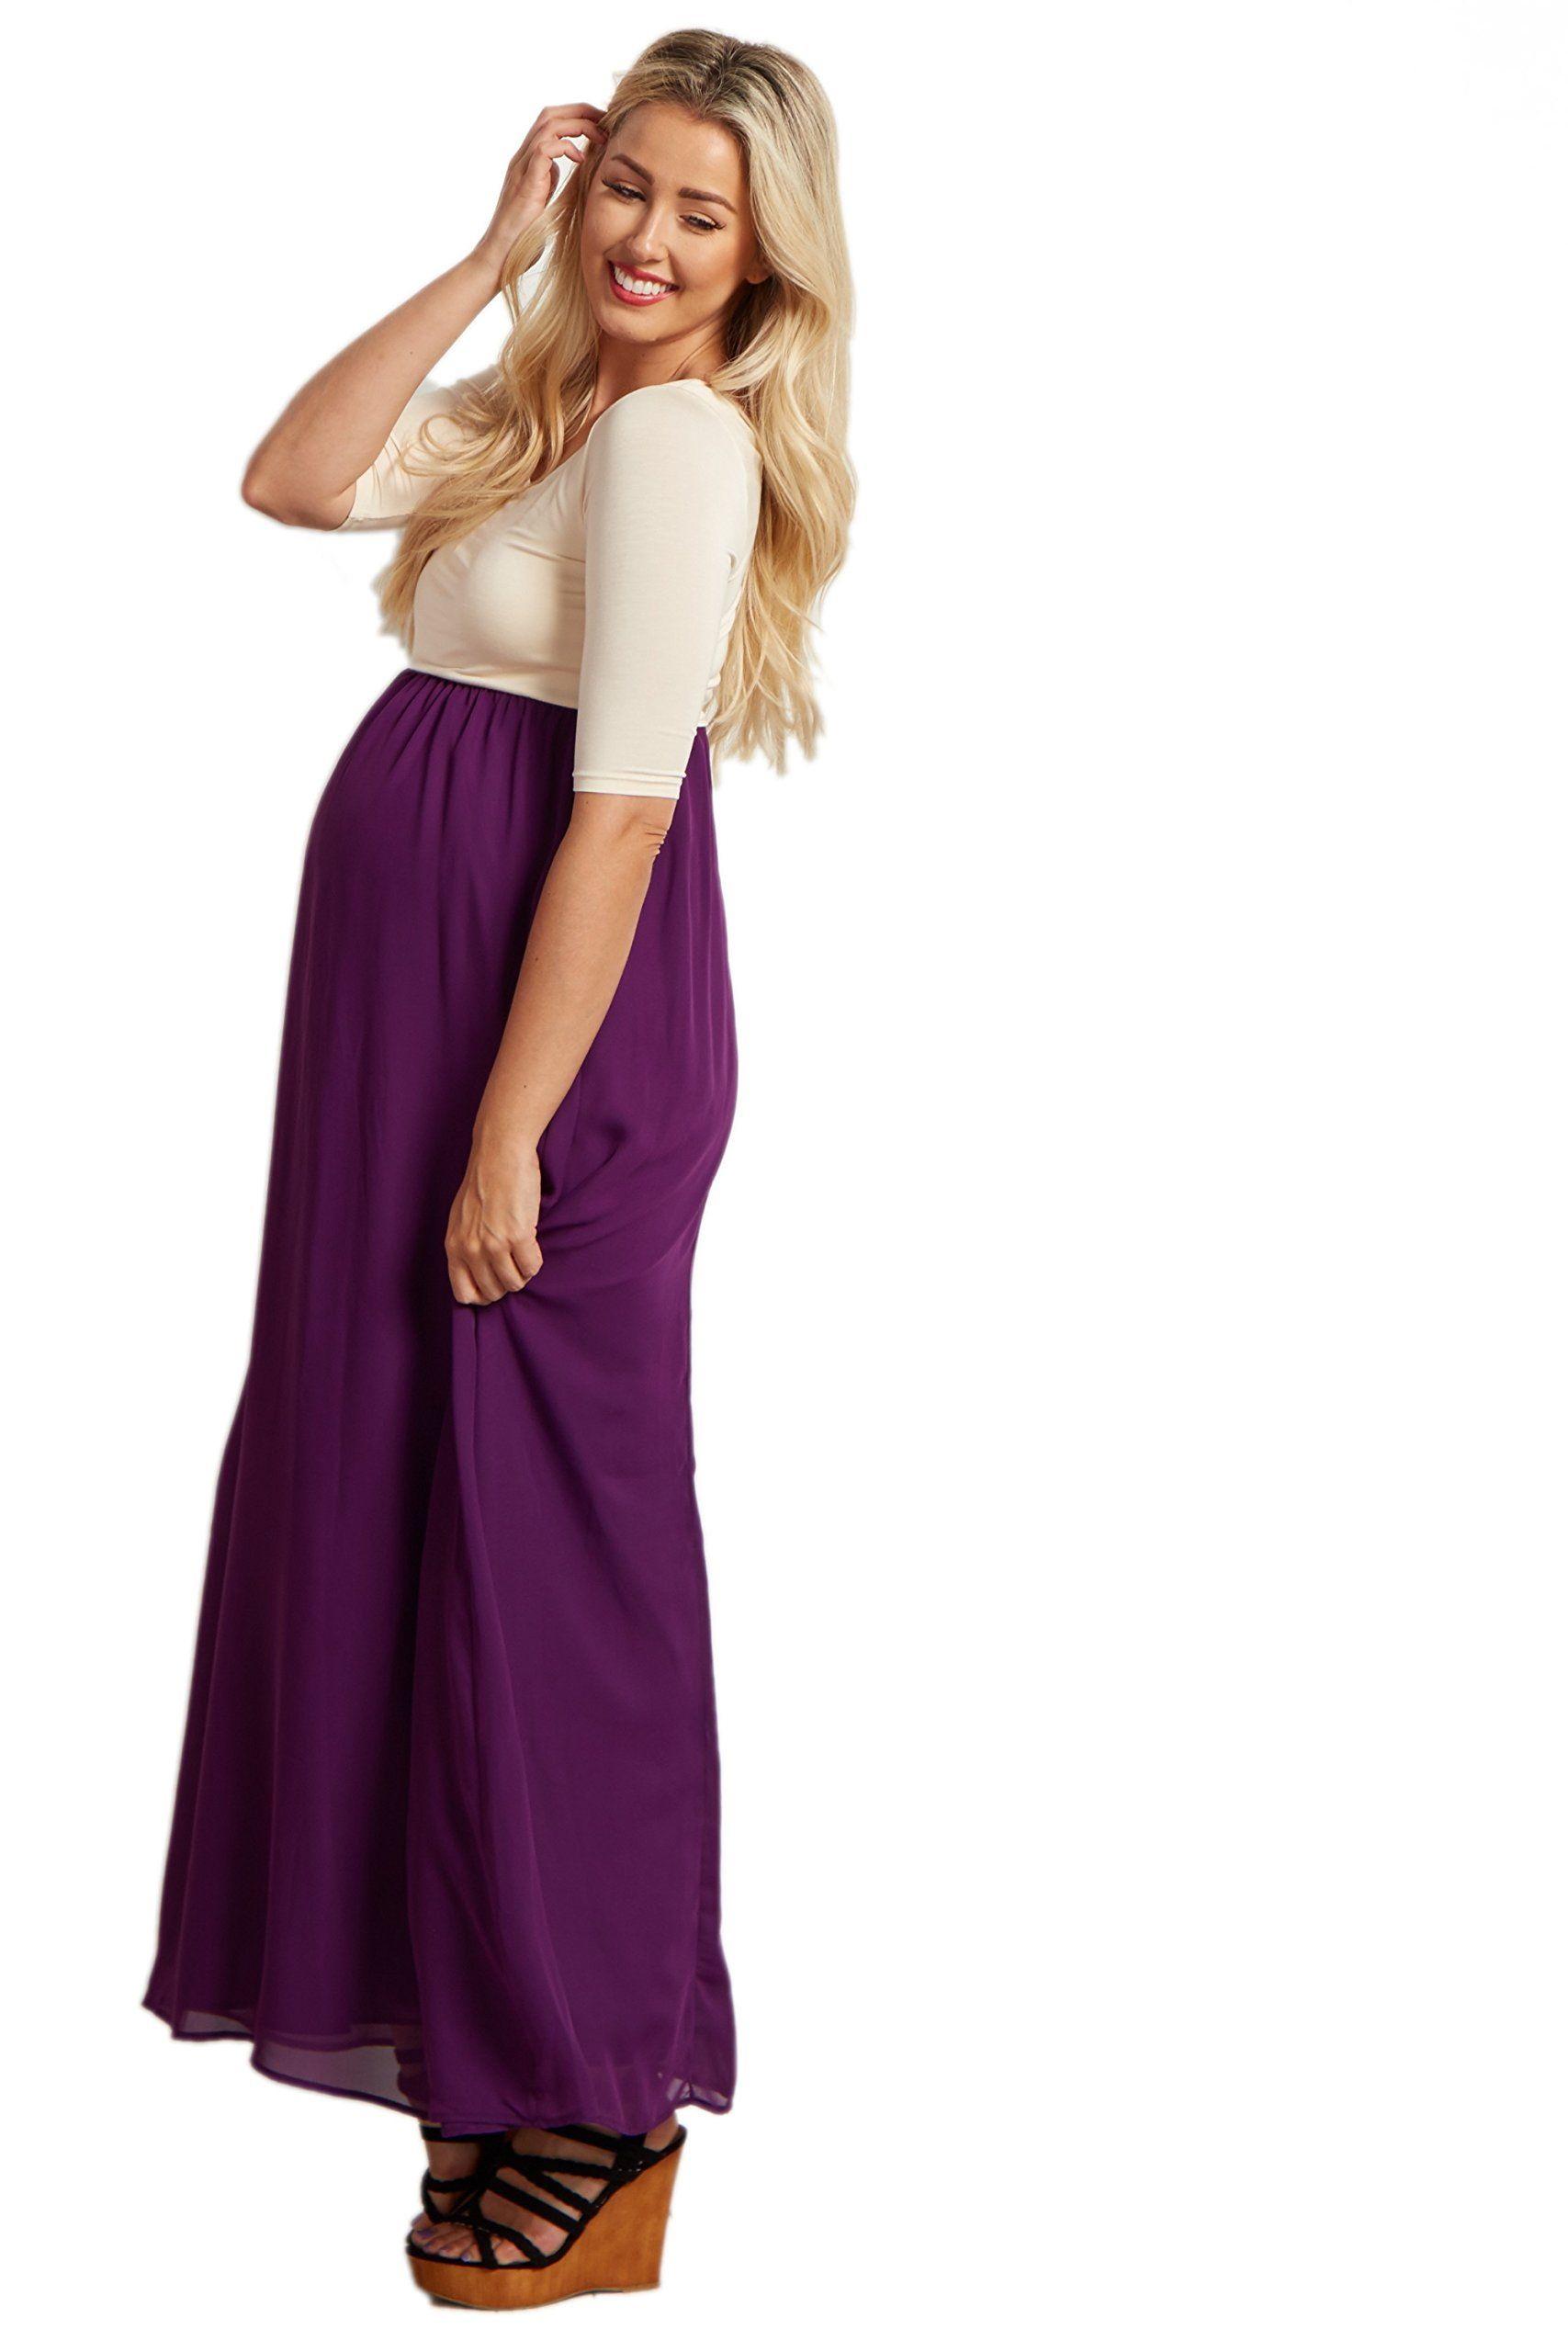 af39e9a4b6630 Women Maternity Clothes - PinkBlush Maternity Purple Chiffon Colorblock  Tall Maternity Maxi Dress Medium *** Discover more by going to the photo  web link.